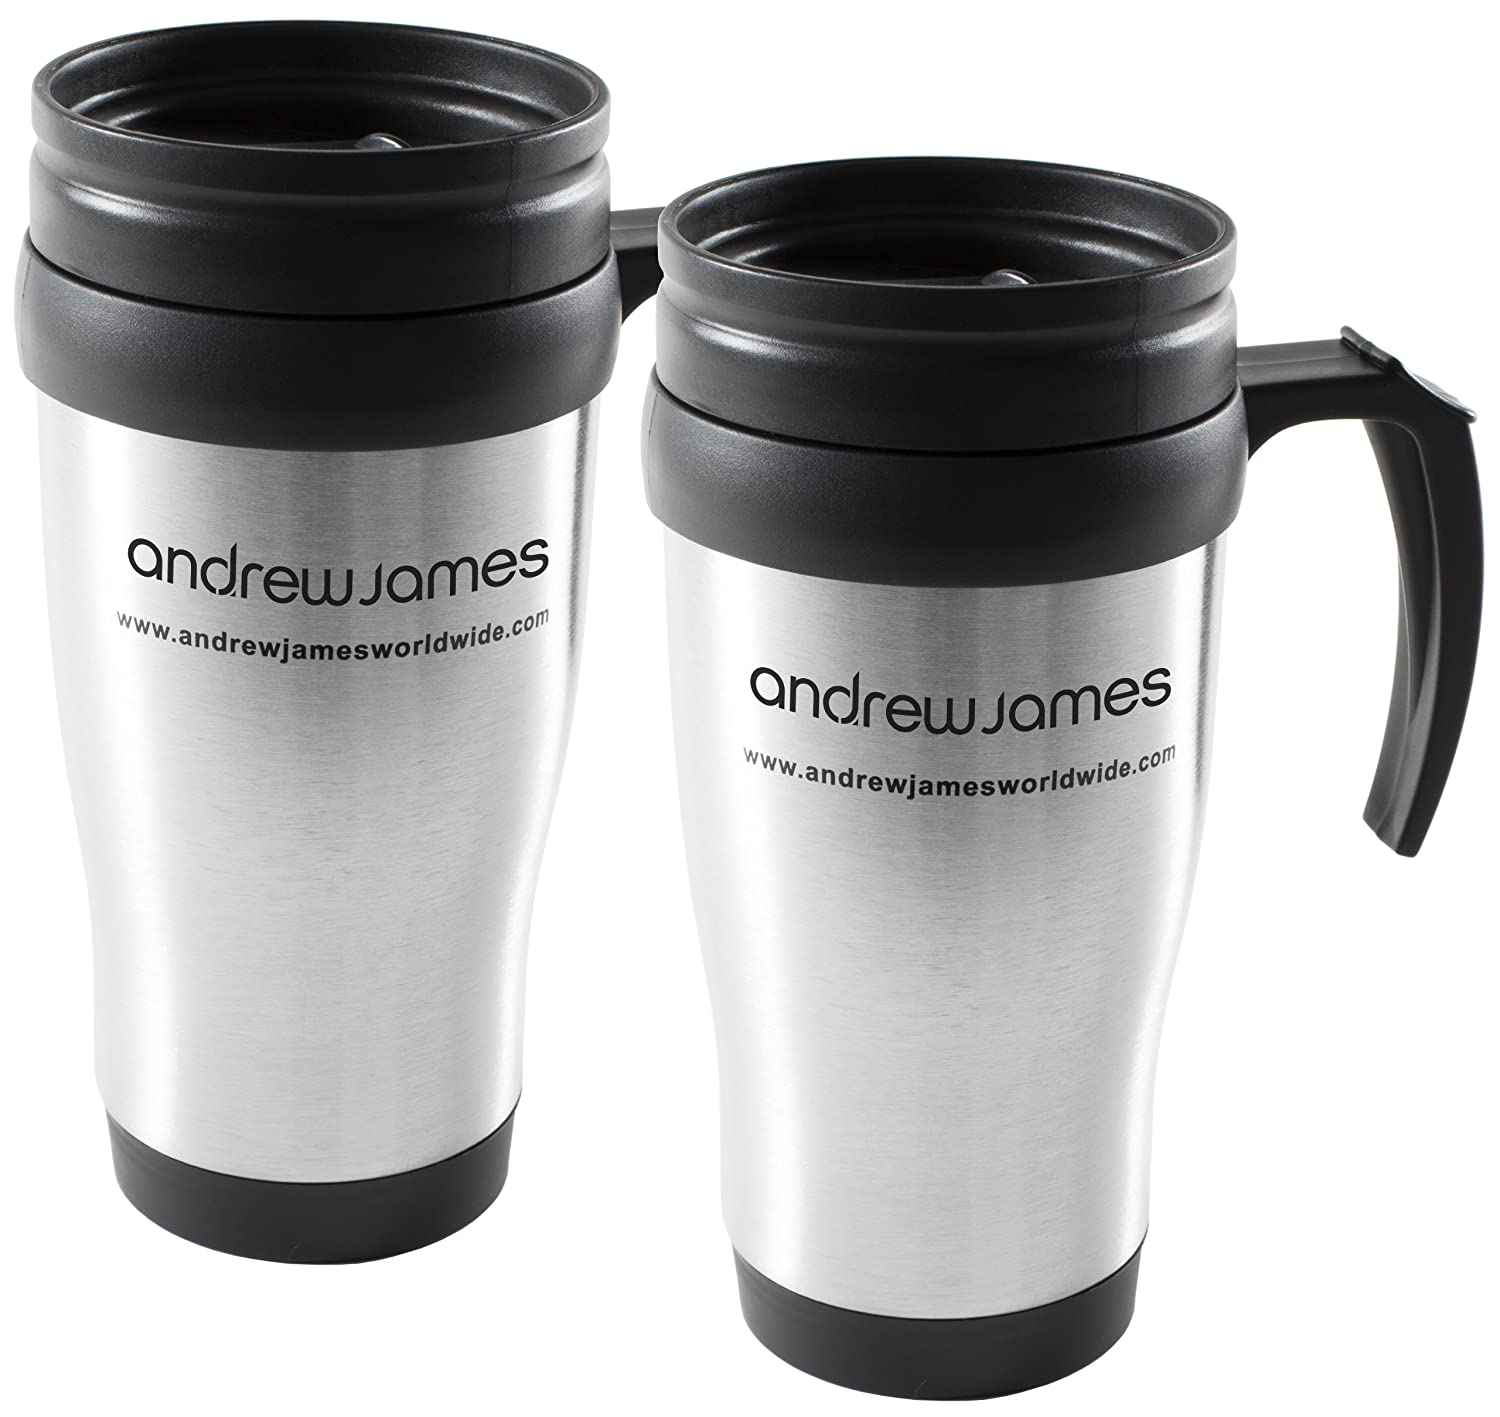 Top 10 Best Stainless Steel Travel Mugs For Hot Coffee